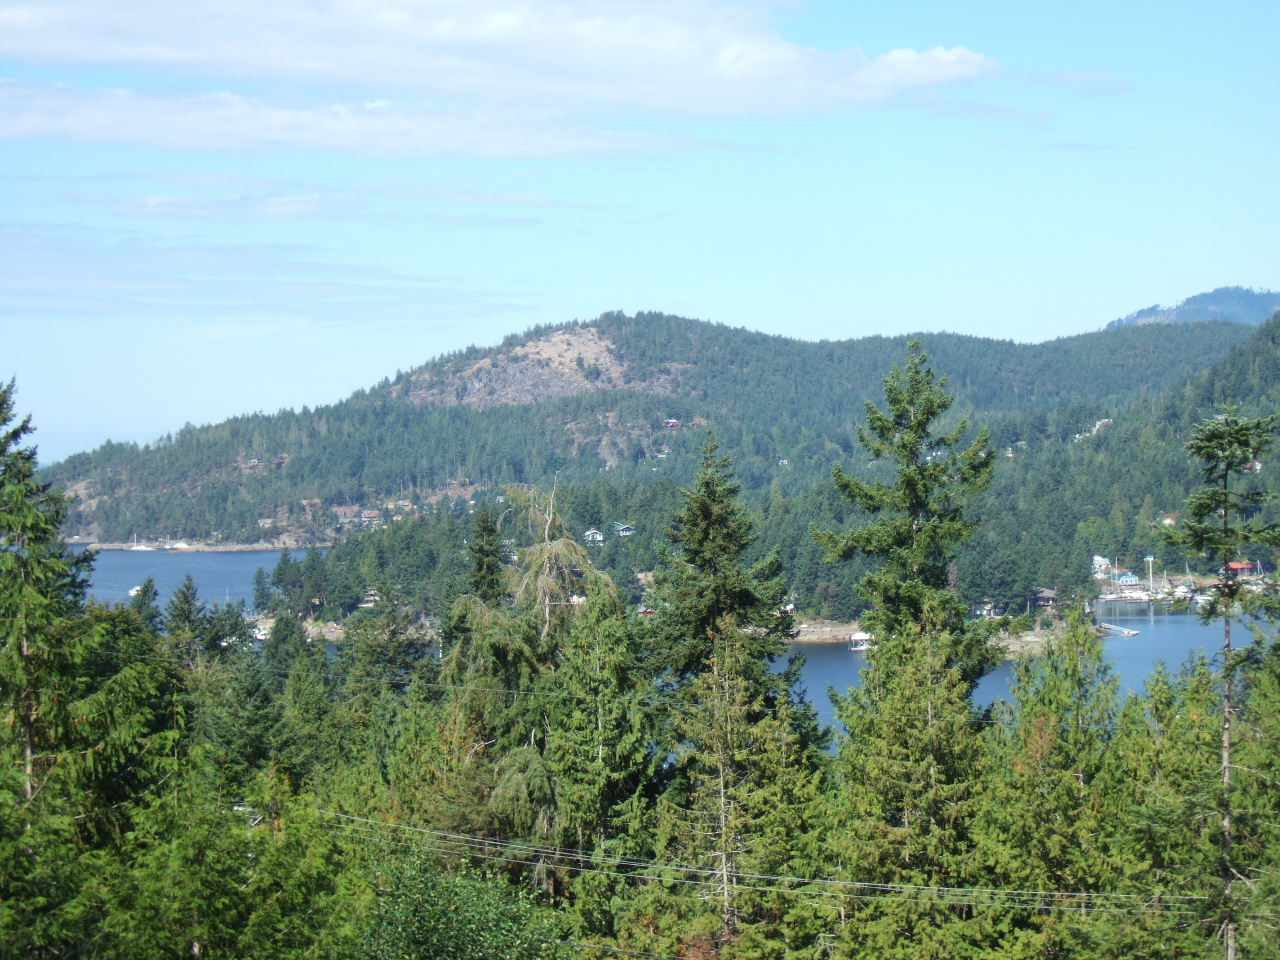 Awesome outlook West from the entrance of Pender Harbour to Malaspina Strait from this 1/2 Acre building lot in Central Madeira Park. Freehold (fee simple) ownership (no strata fee). Plenty of recreational boating, hiking, freshwater lakes & golfing all nearby. Driveway + Build Site in place.